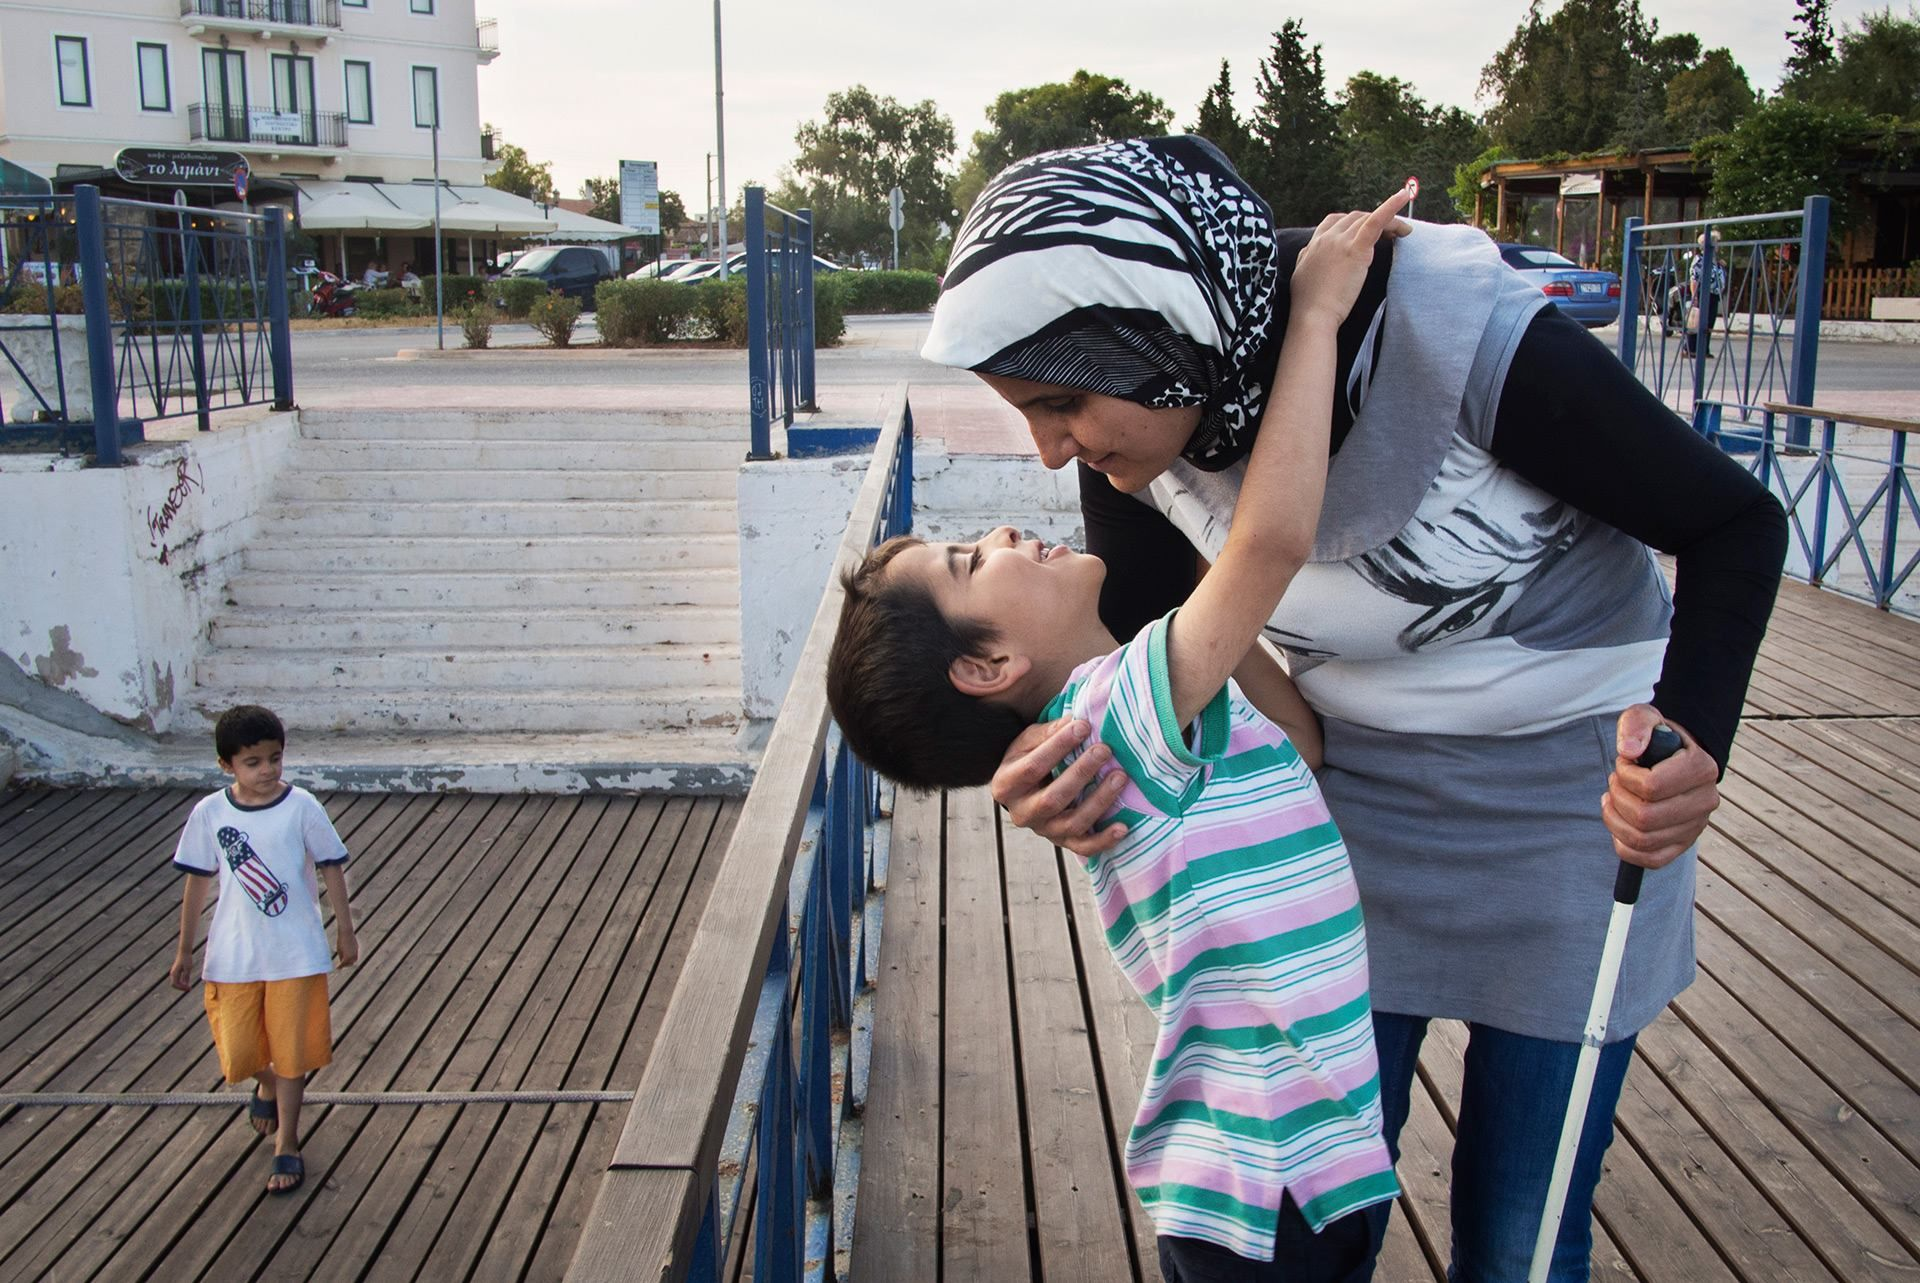 War Drove Them From Syria Europe Has Torn Them Apart A Blind